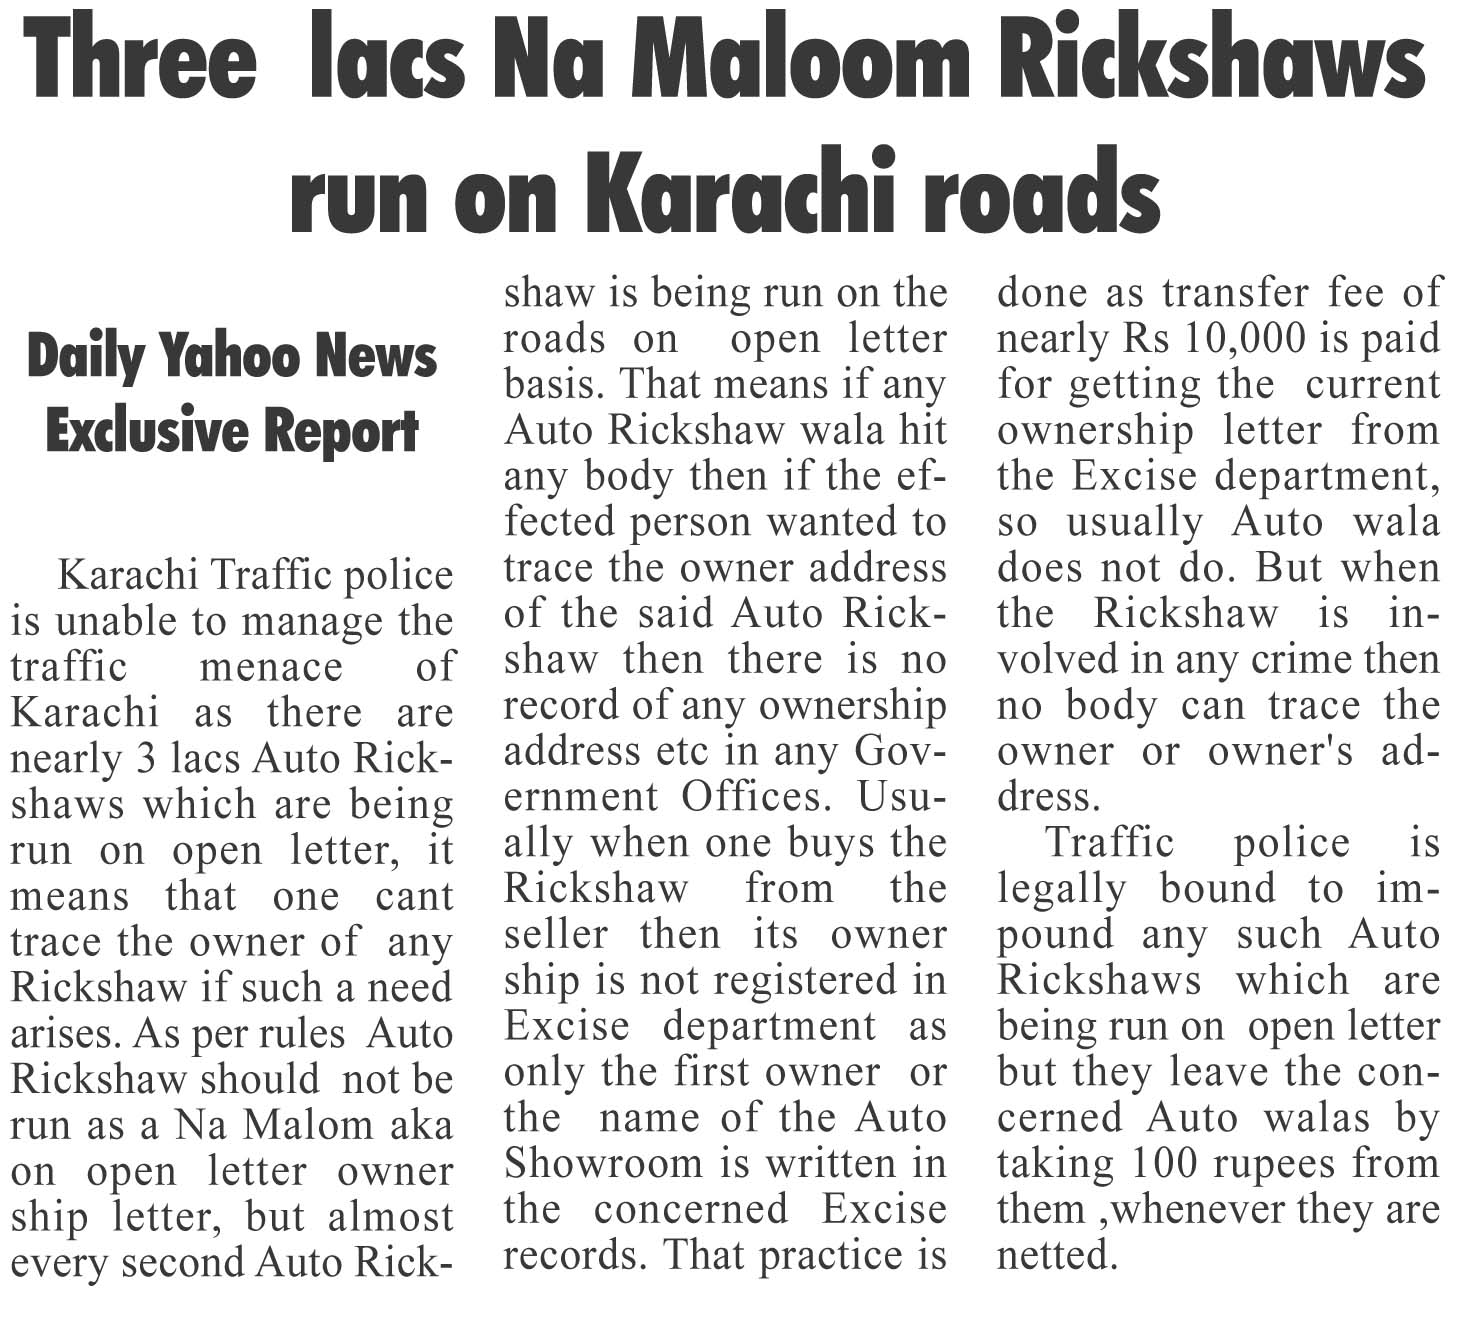 Three  lacs Na Maloom Rickshaws run on Karachi roads